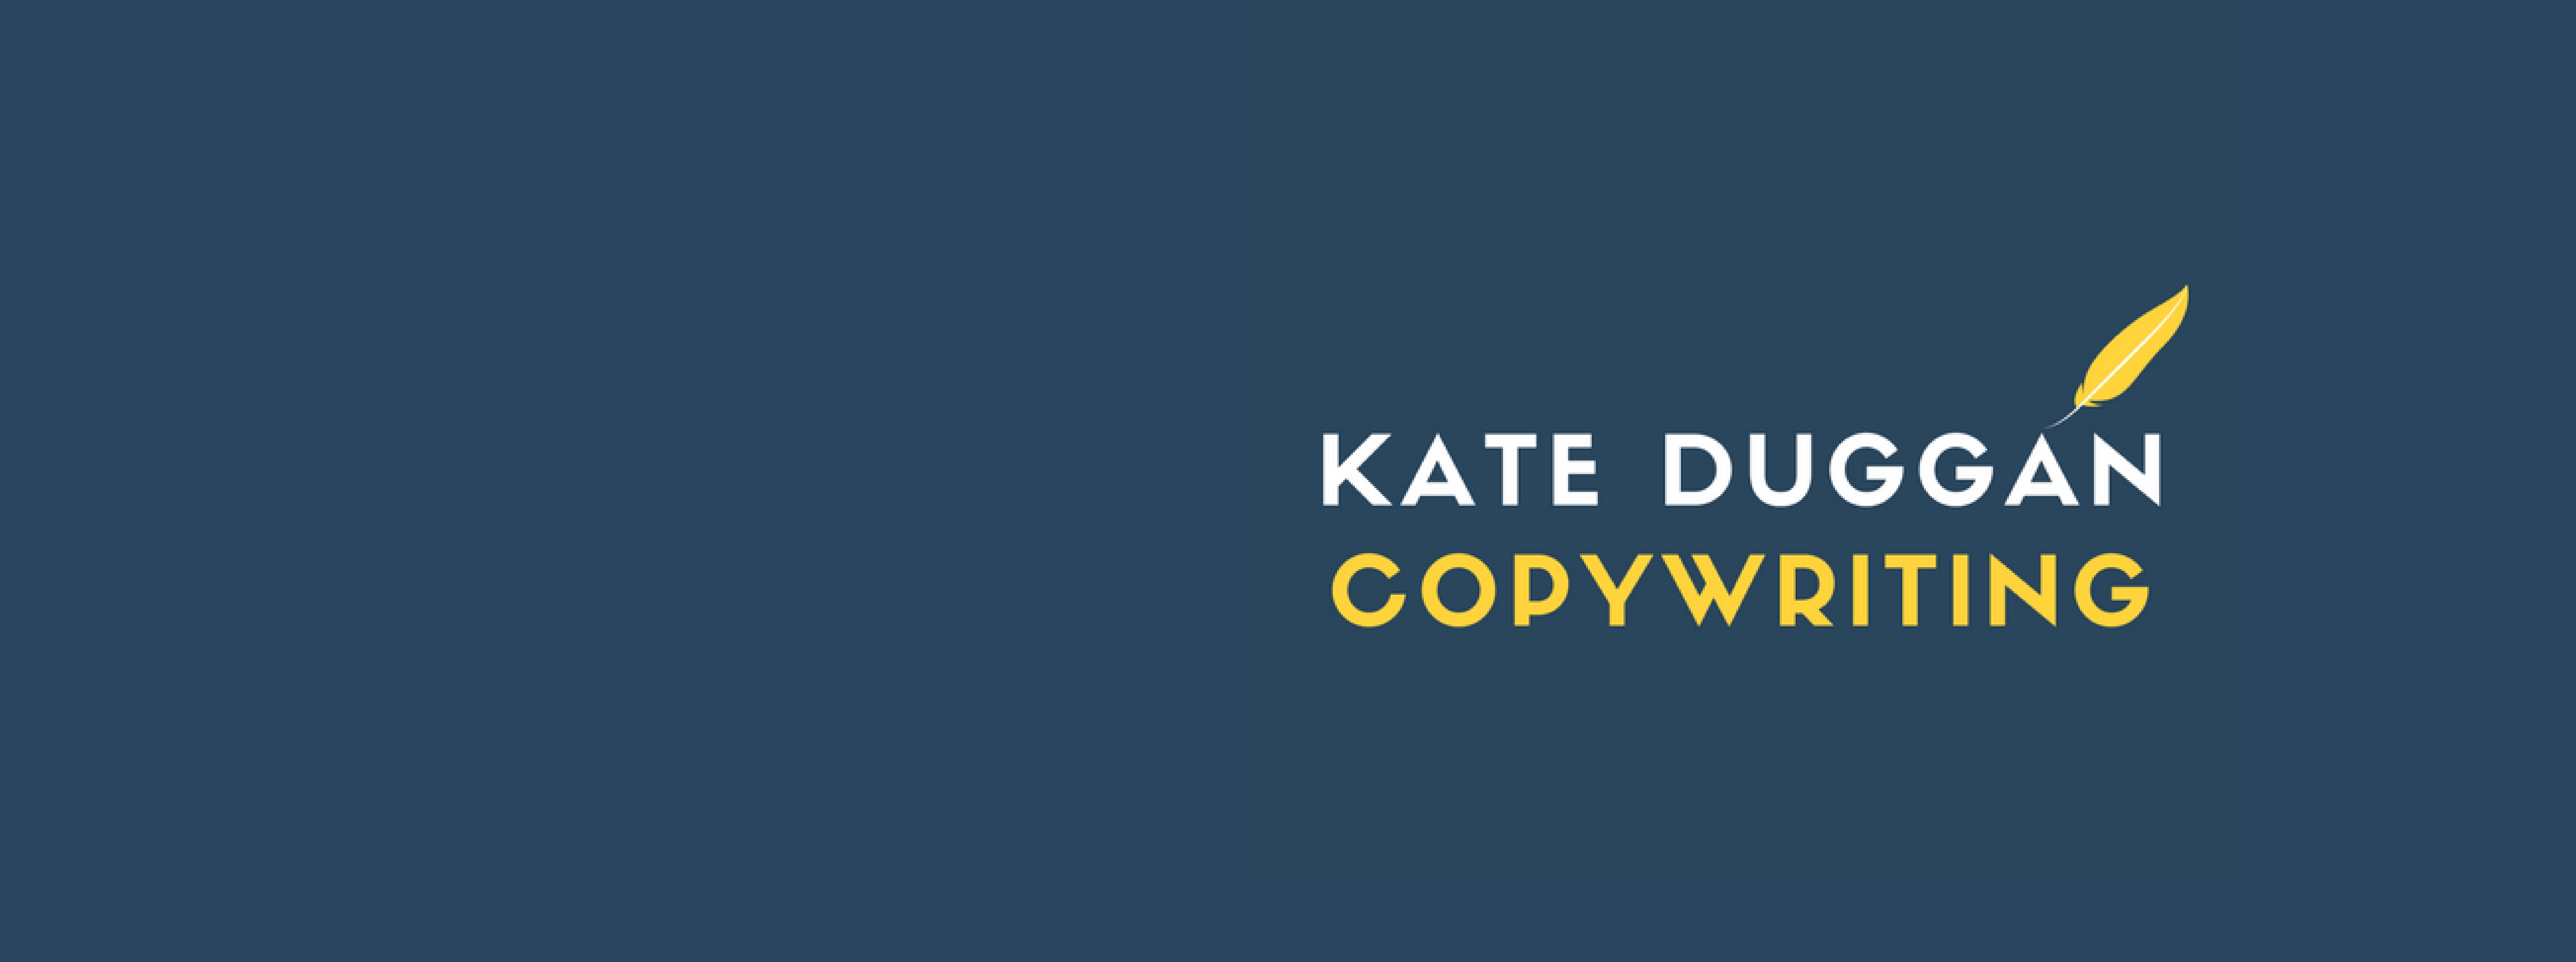 Kate Duggan Copywriting logo